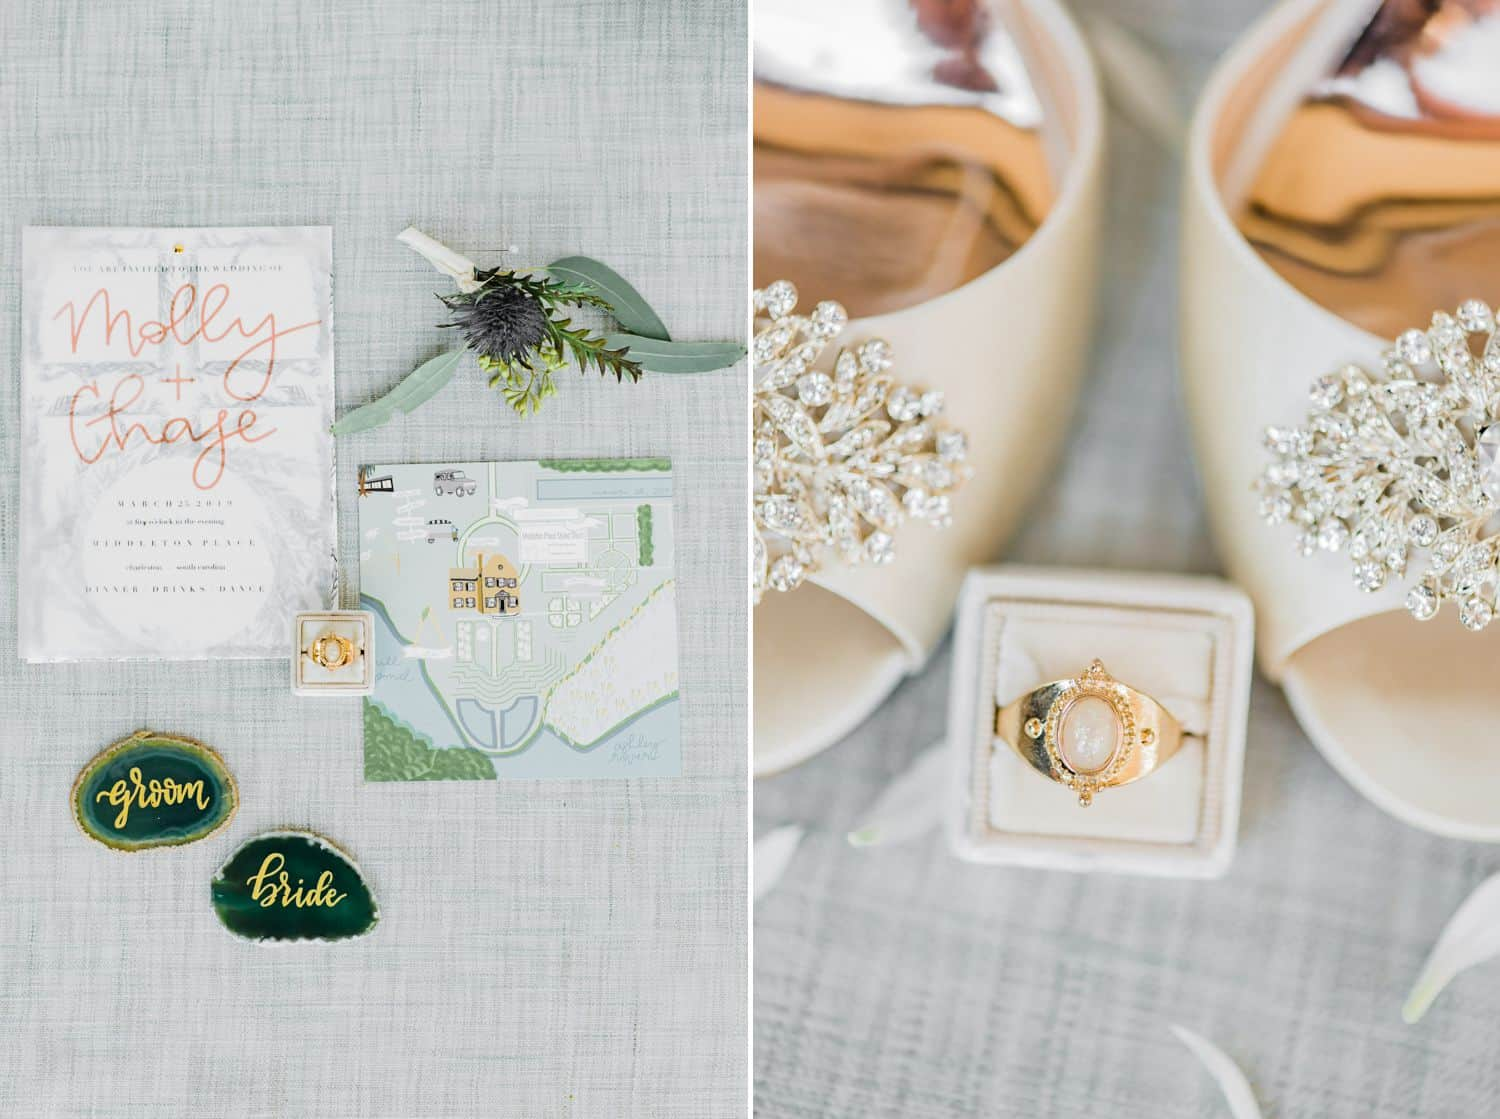 Botanical Wedding Details: Get Photography Clients with Styled Shoots